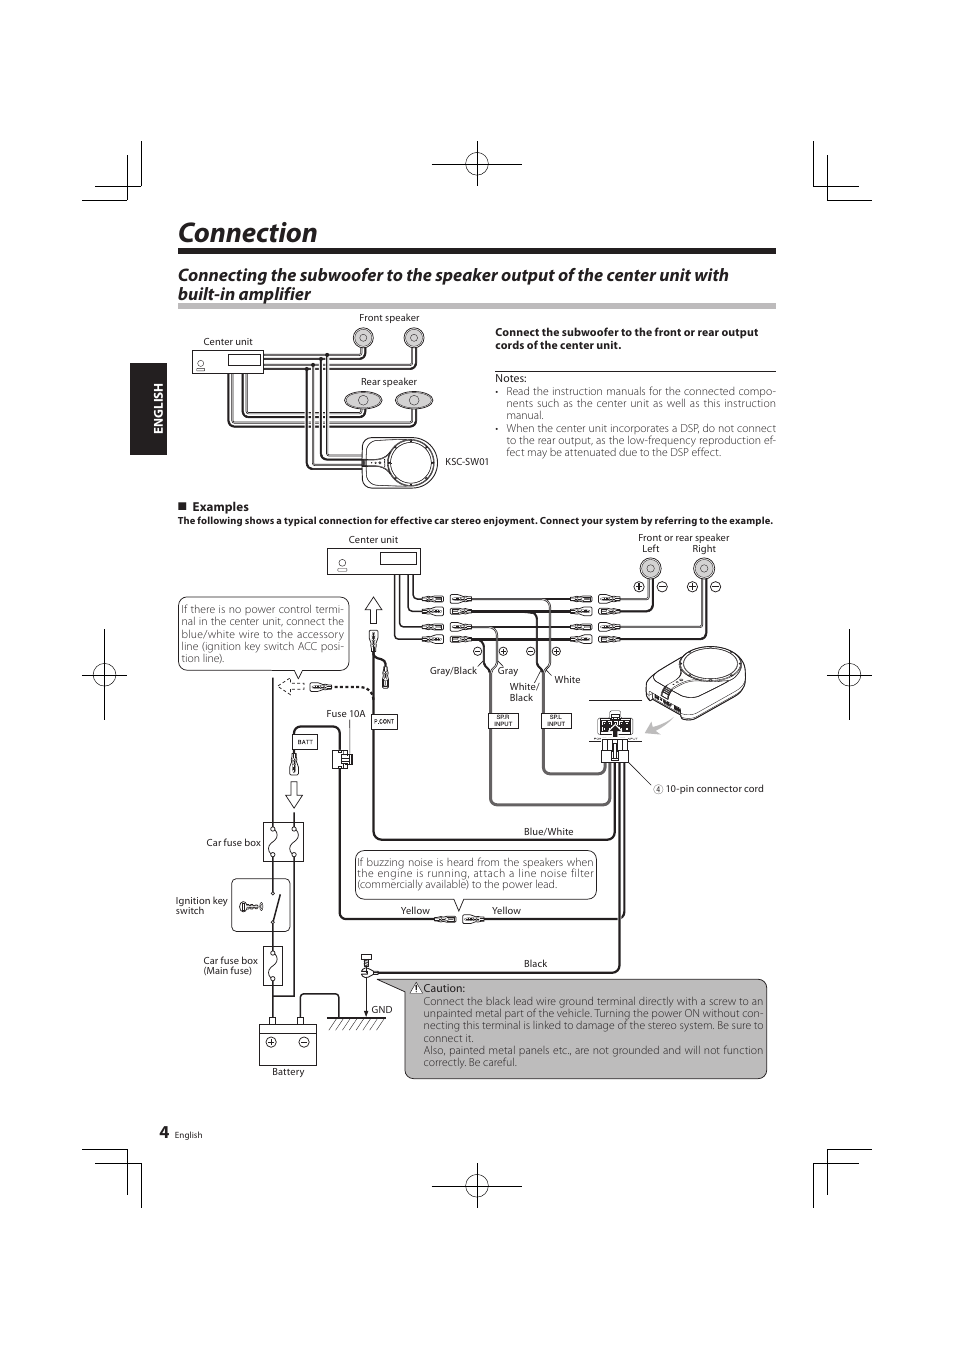 medium resolution of connection kenwood ksc sw01 user manual page 4 7